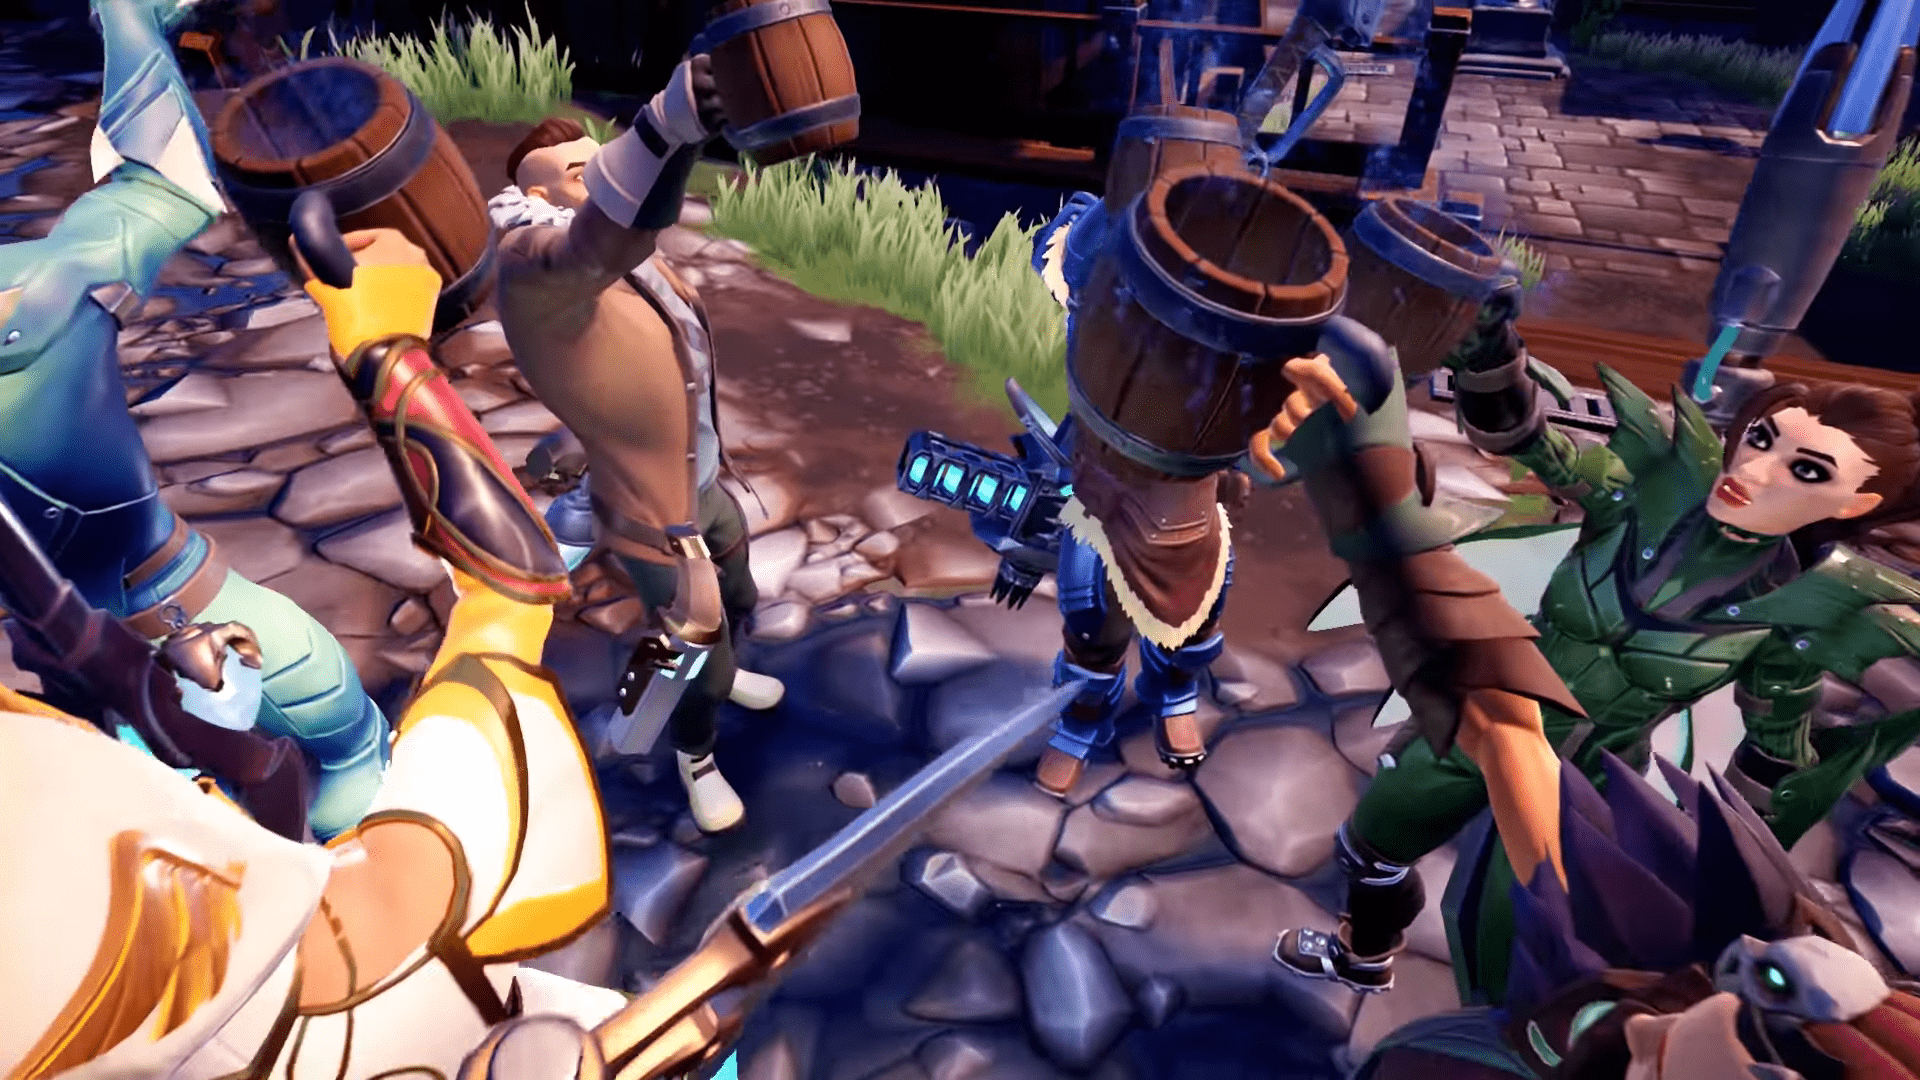 New Pirate Update For Dauntless Also Comes With Multiplayer Monster